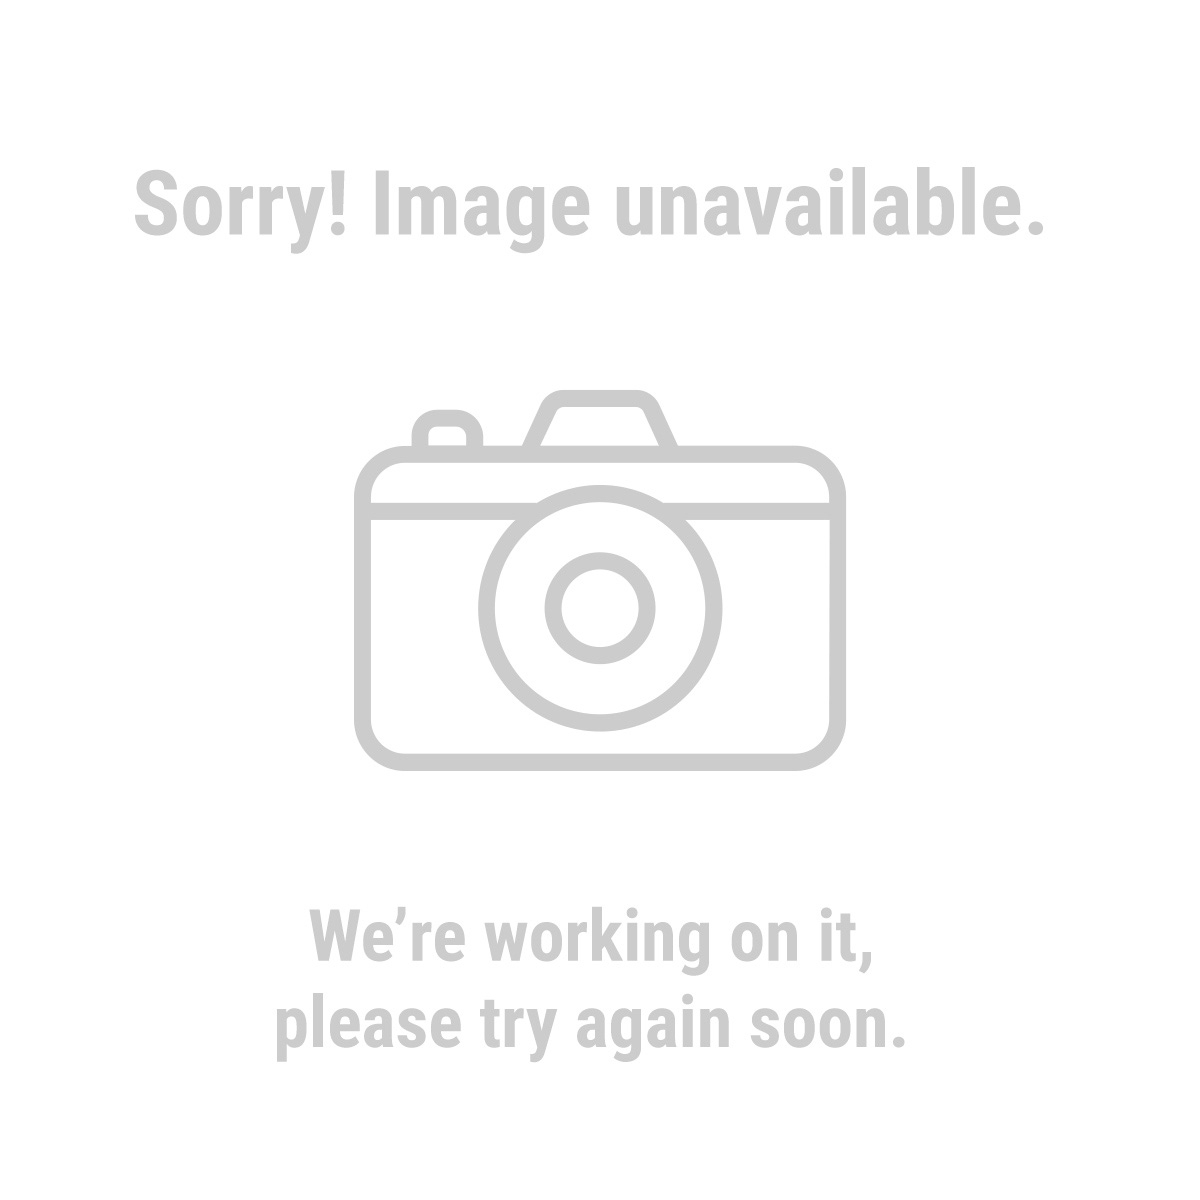 Smith + Jones 67842 2 Horsepower Compressor Duty Motor